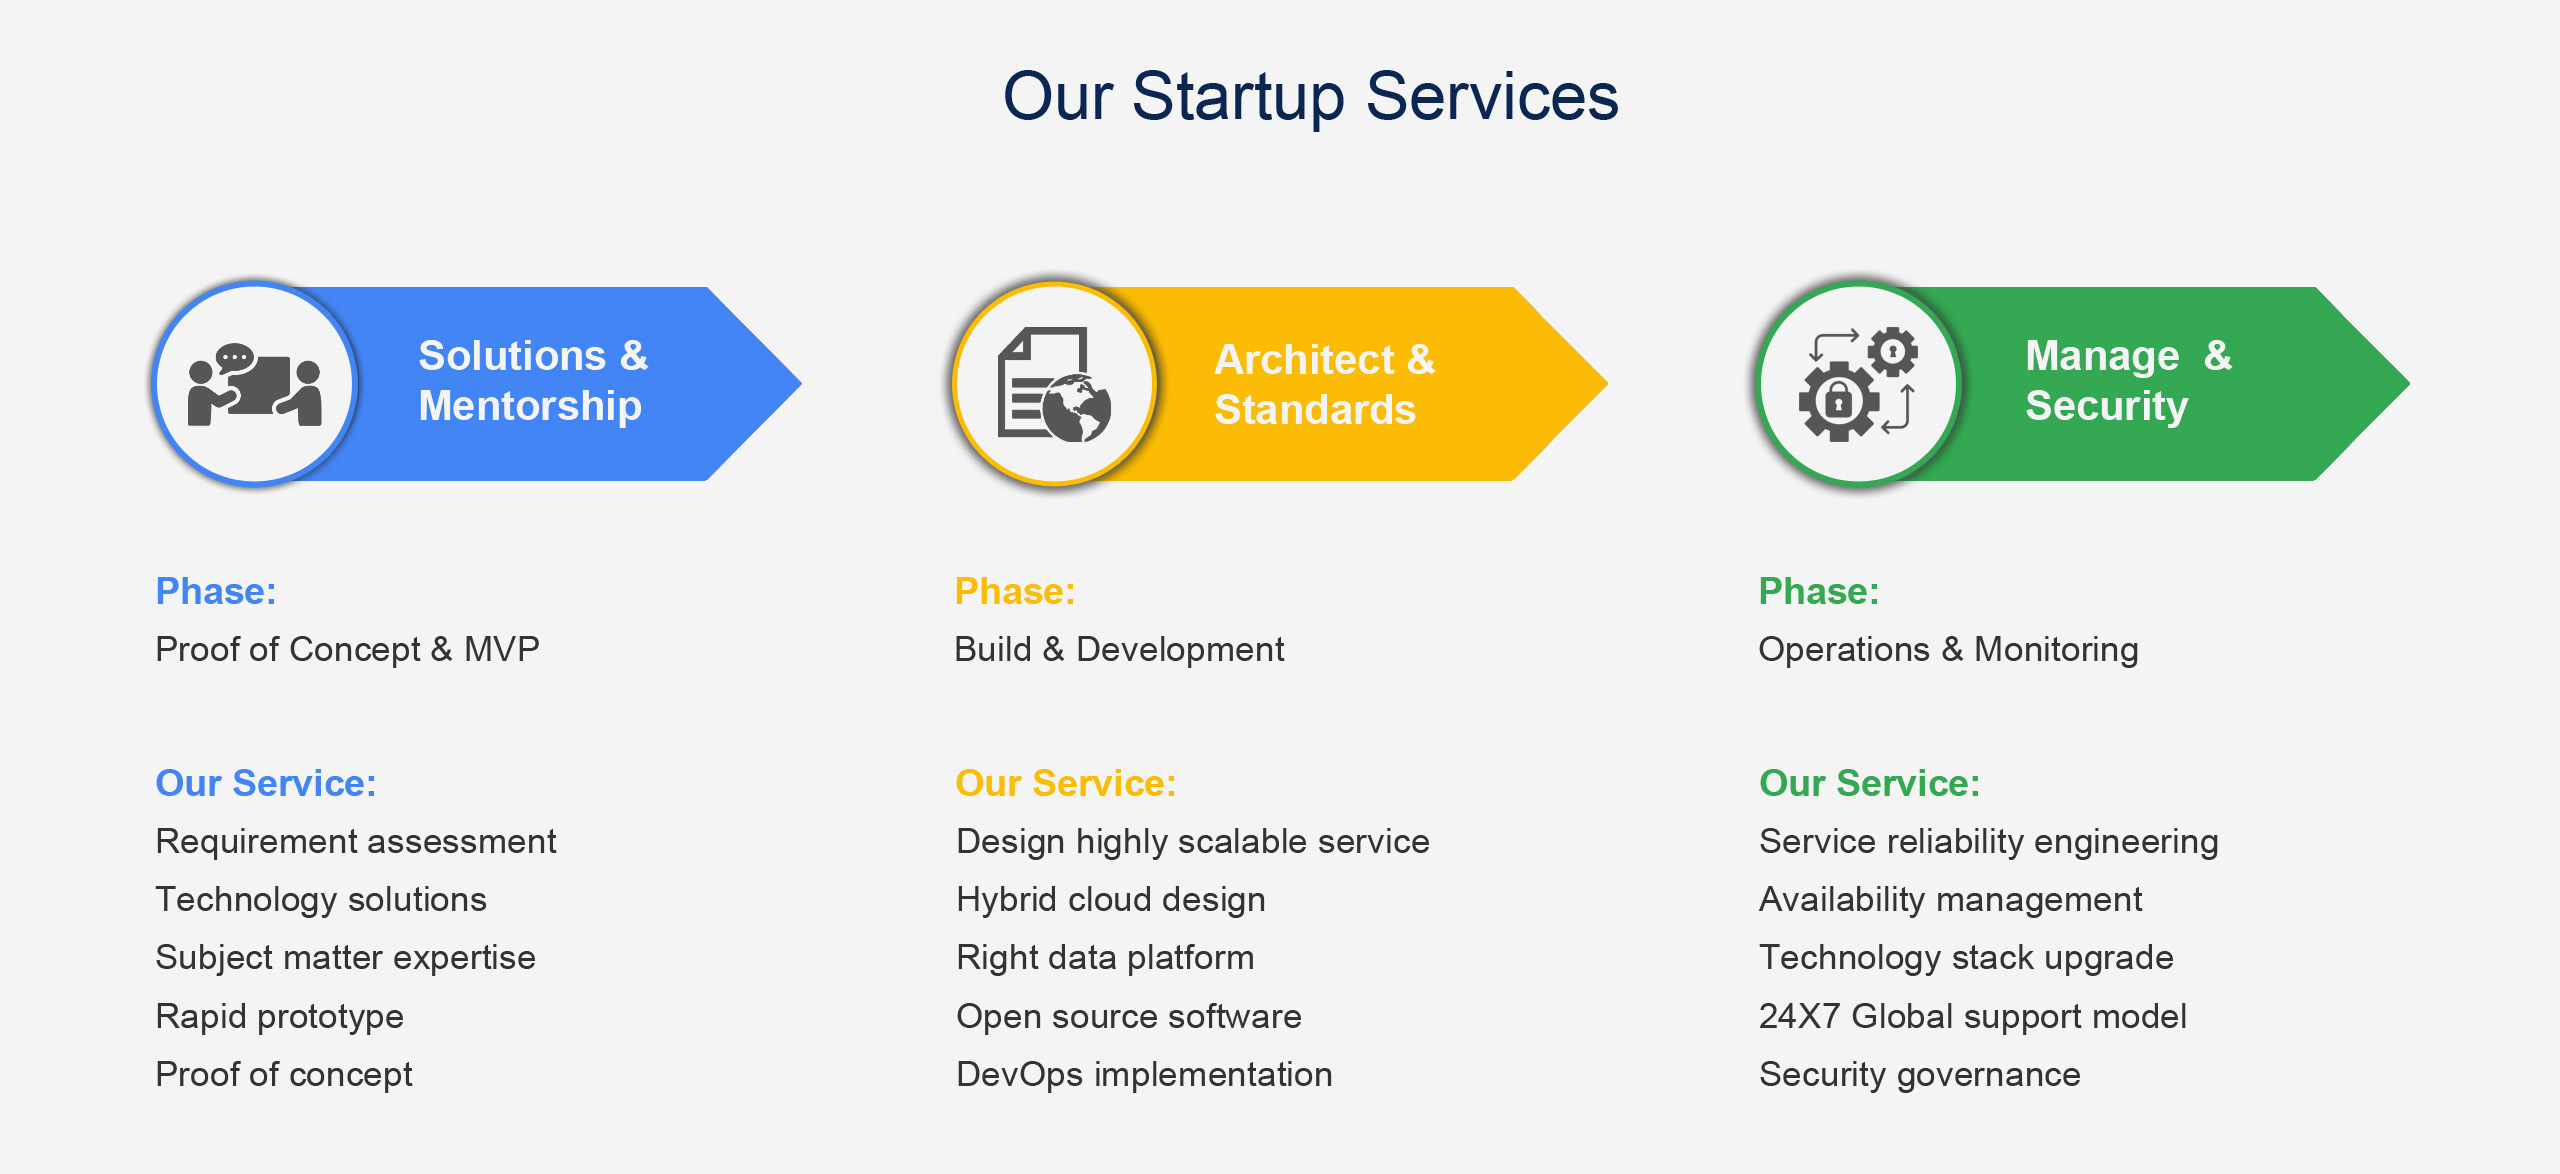 Our Startup Services